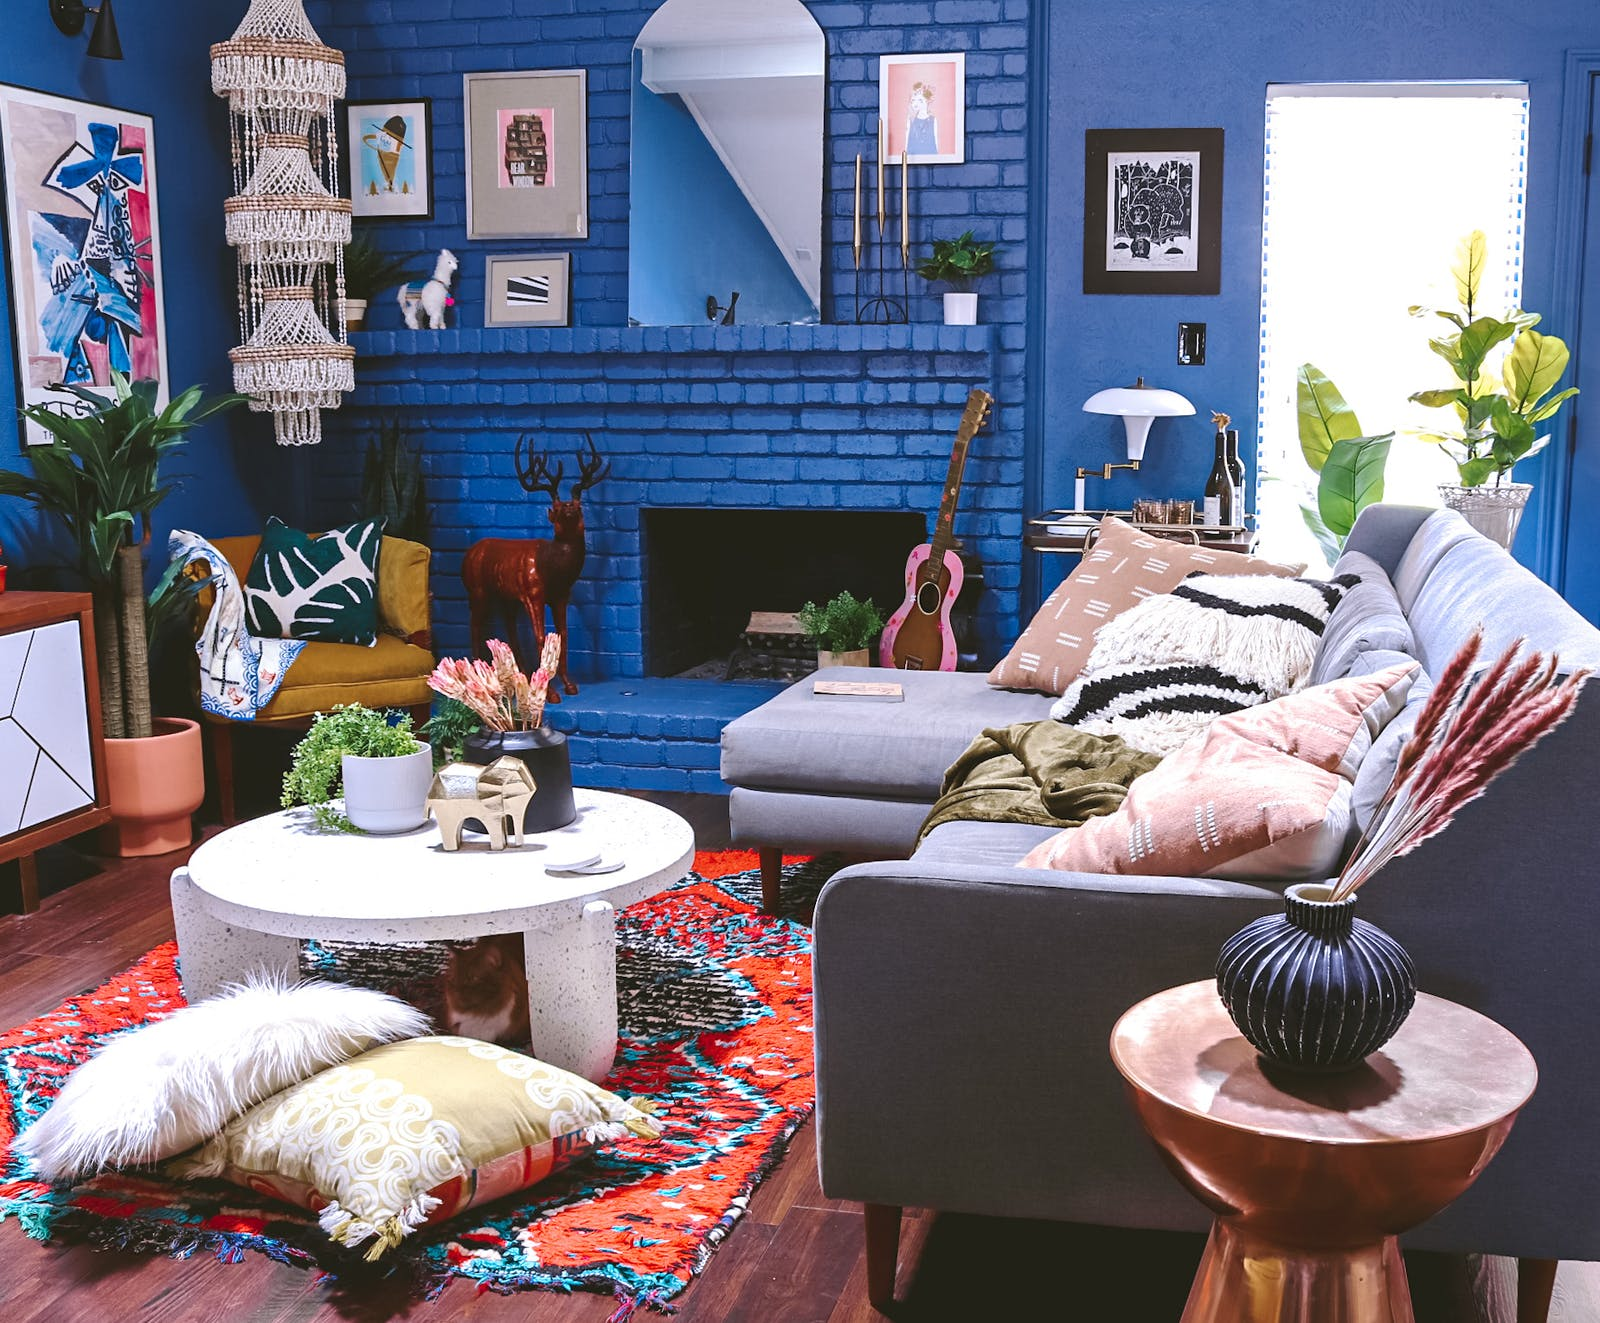 Image of bohemian style living room with deep blue walls and many eclectic ornaments